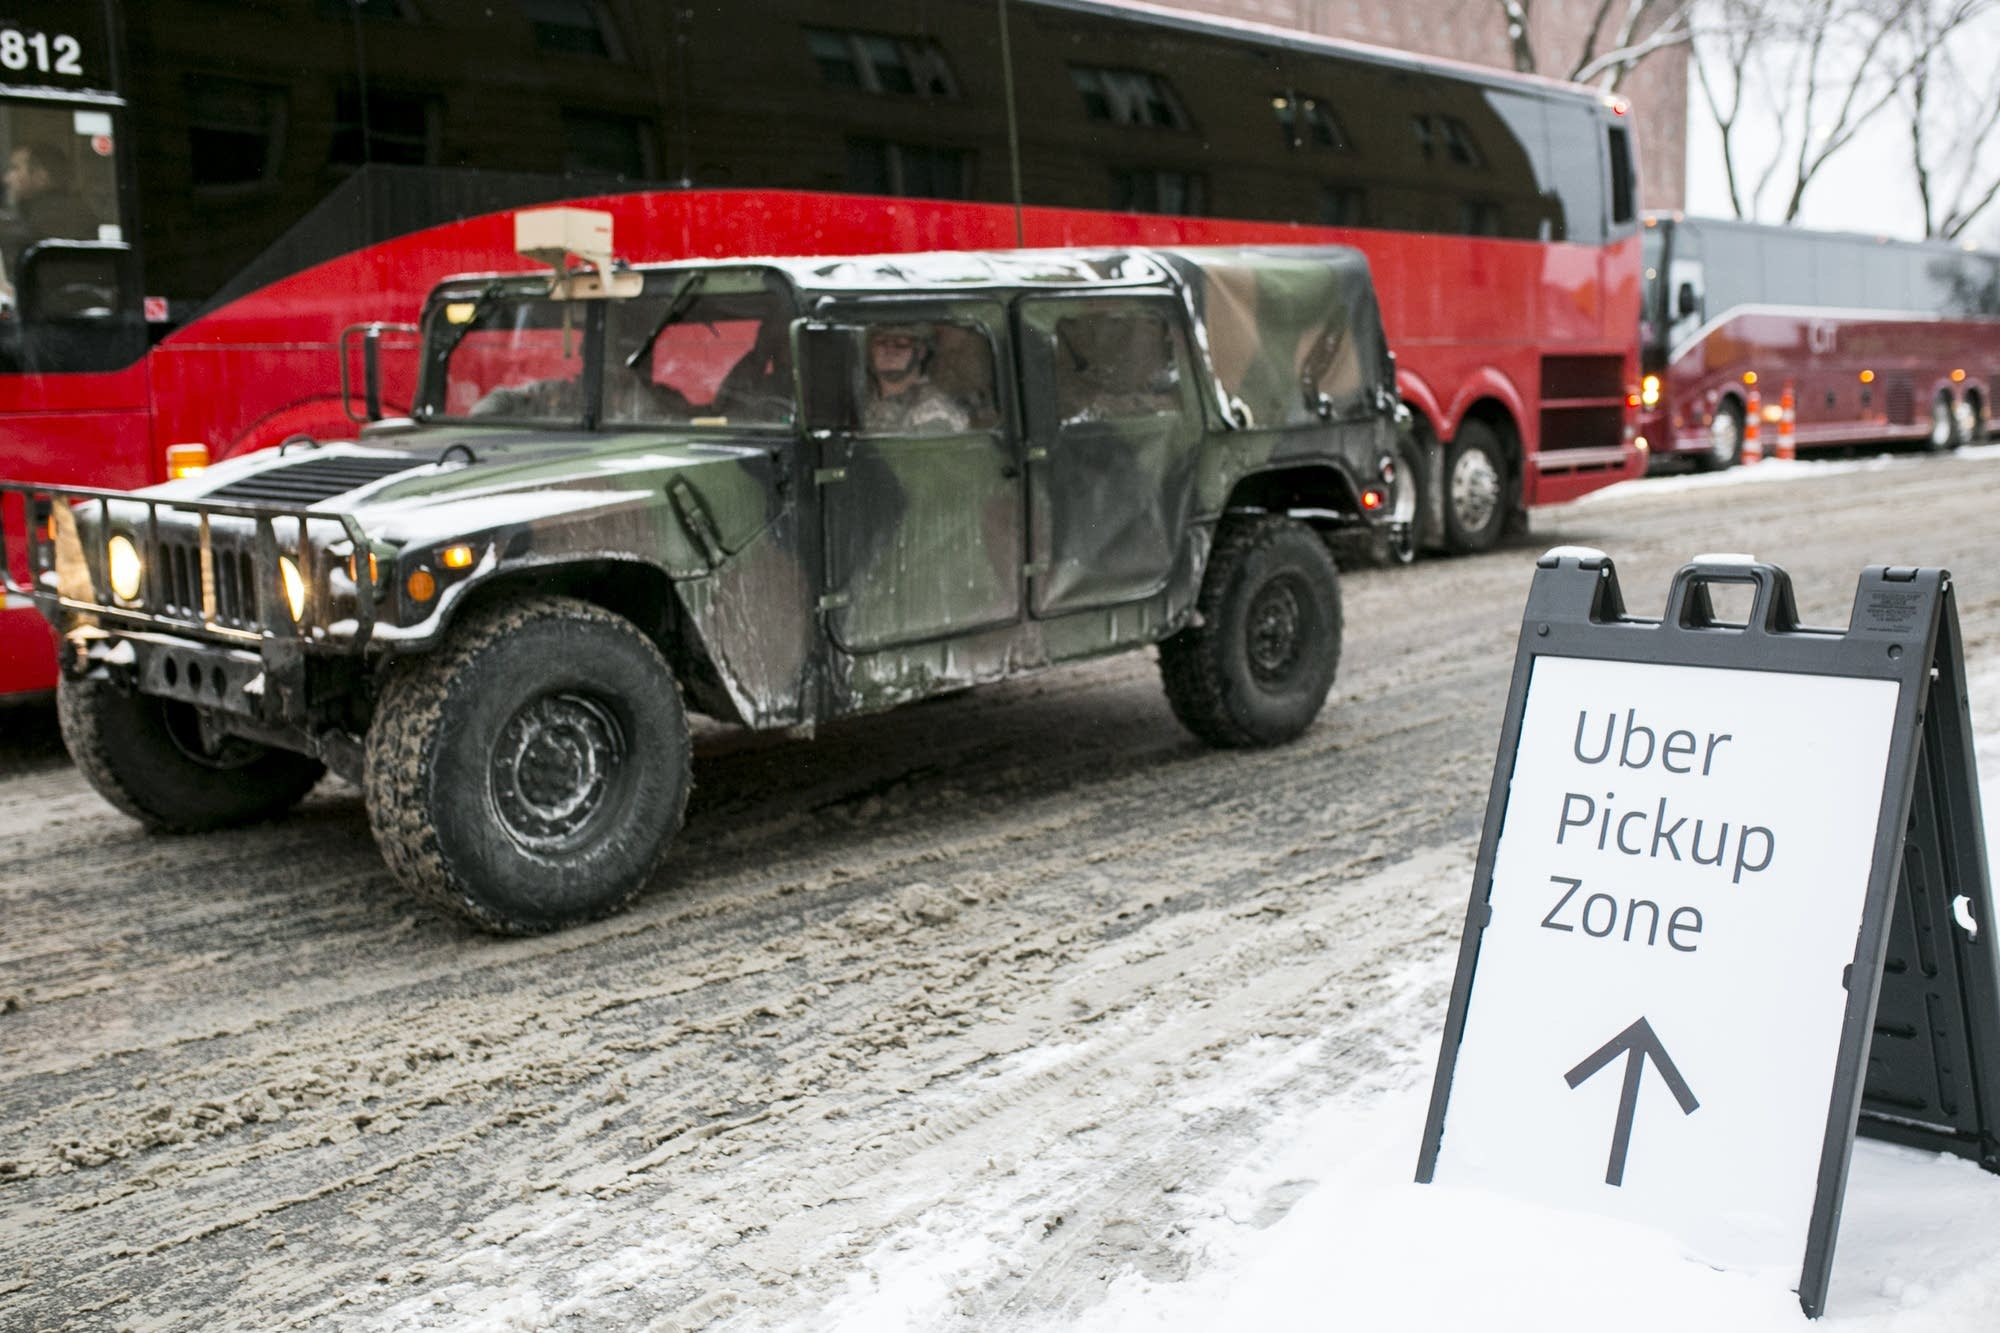 A military Humvee drives past a sign for an Uber pickup zone